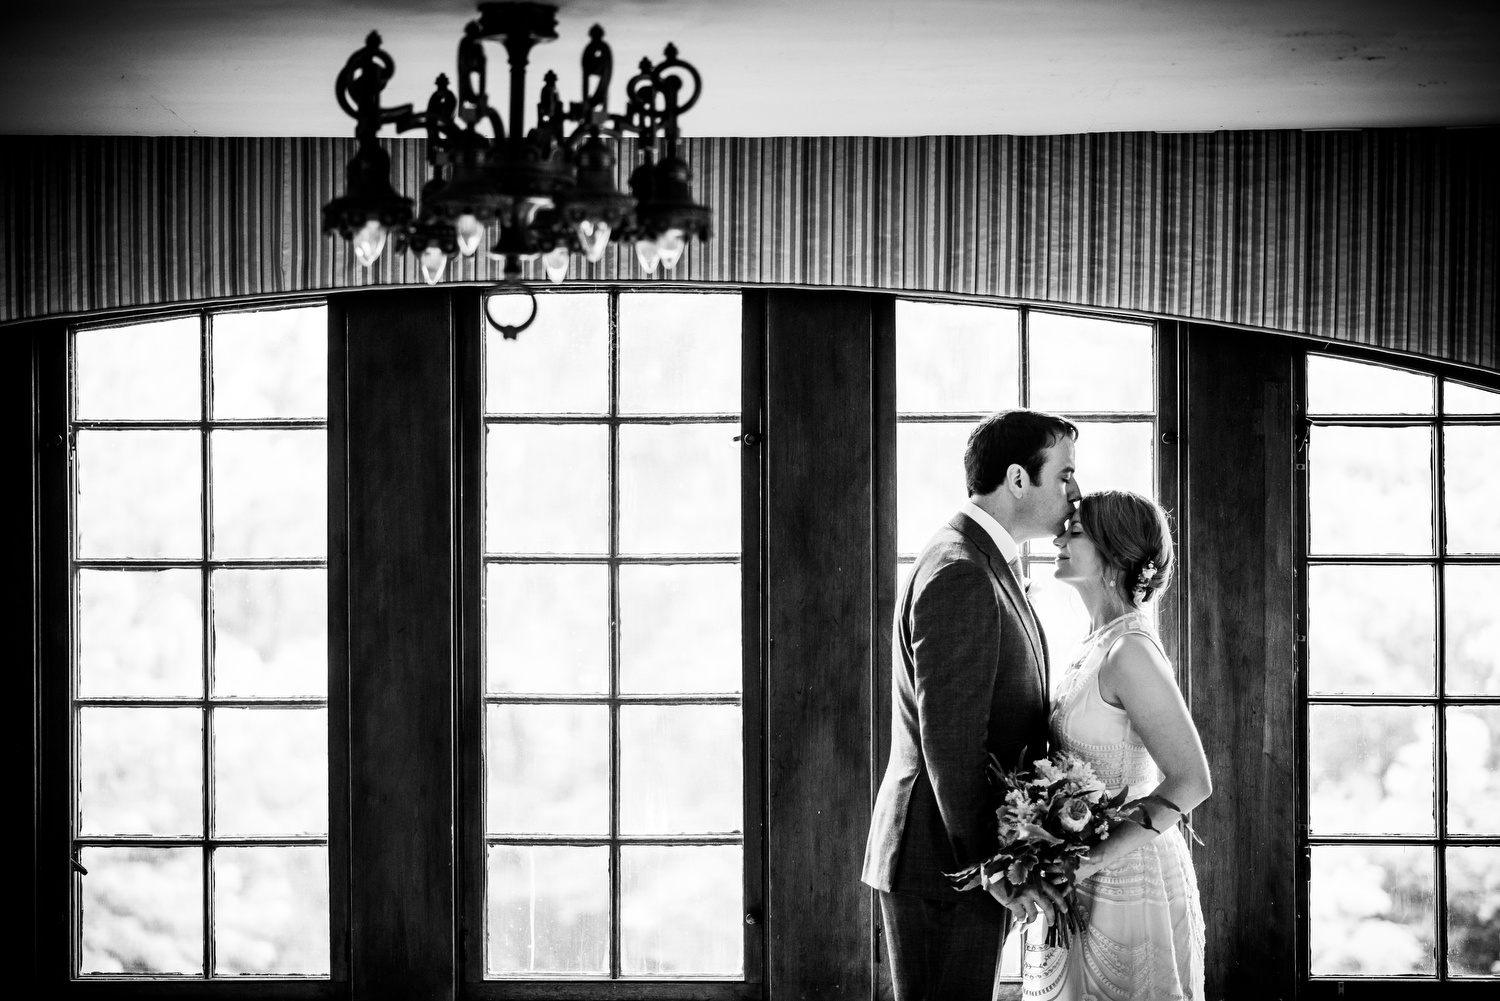 Bride & groom kiss during their wedding at the Cheney Mansion in Oak Park.